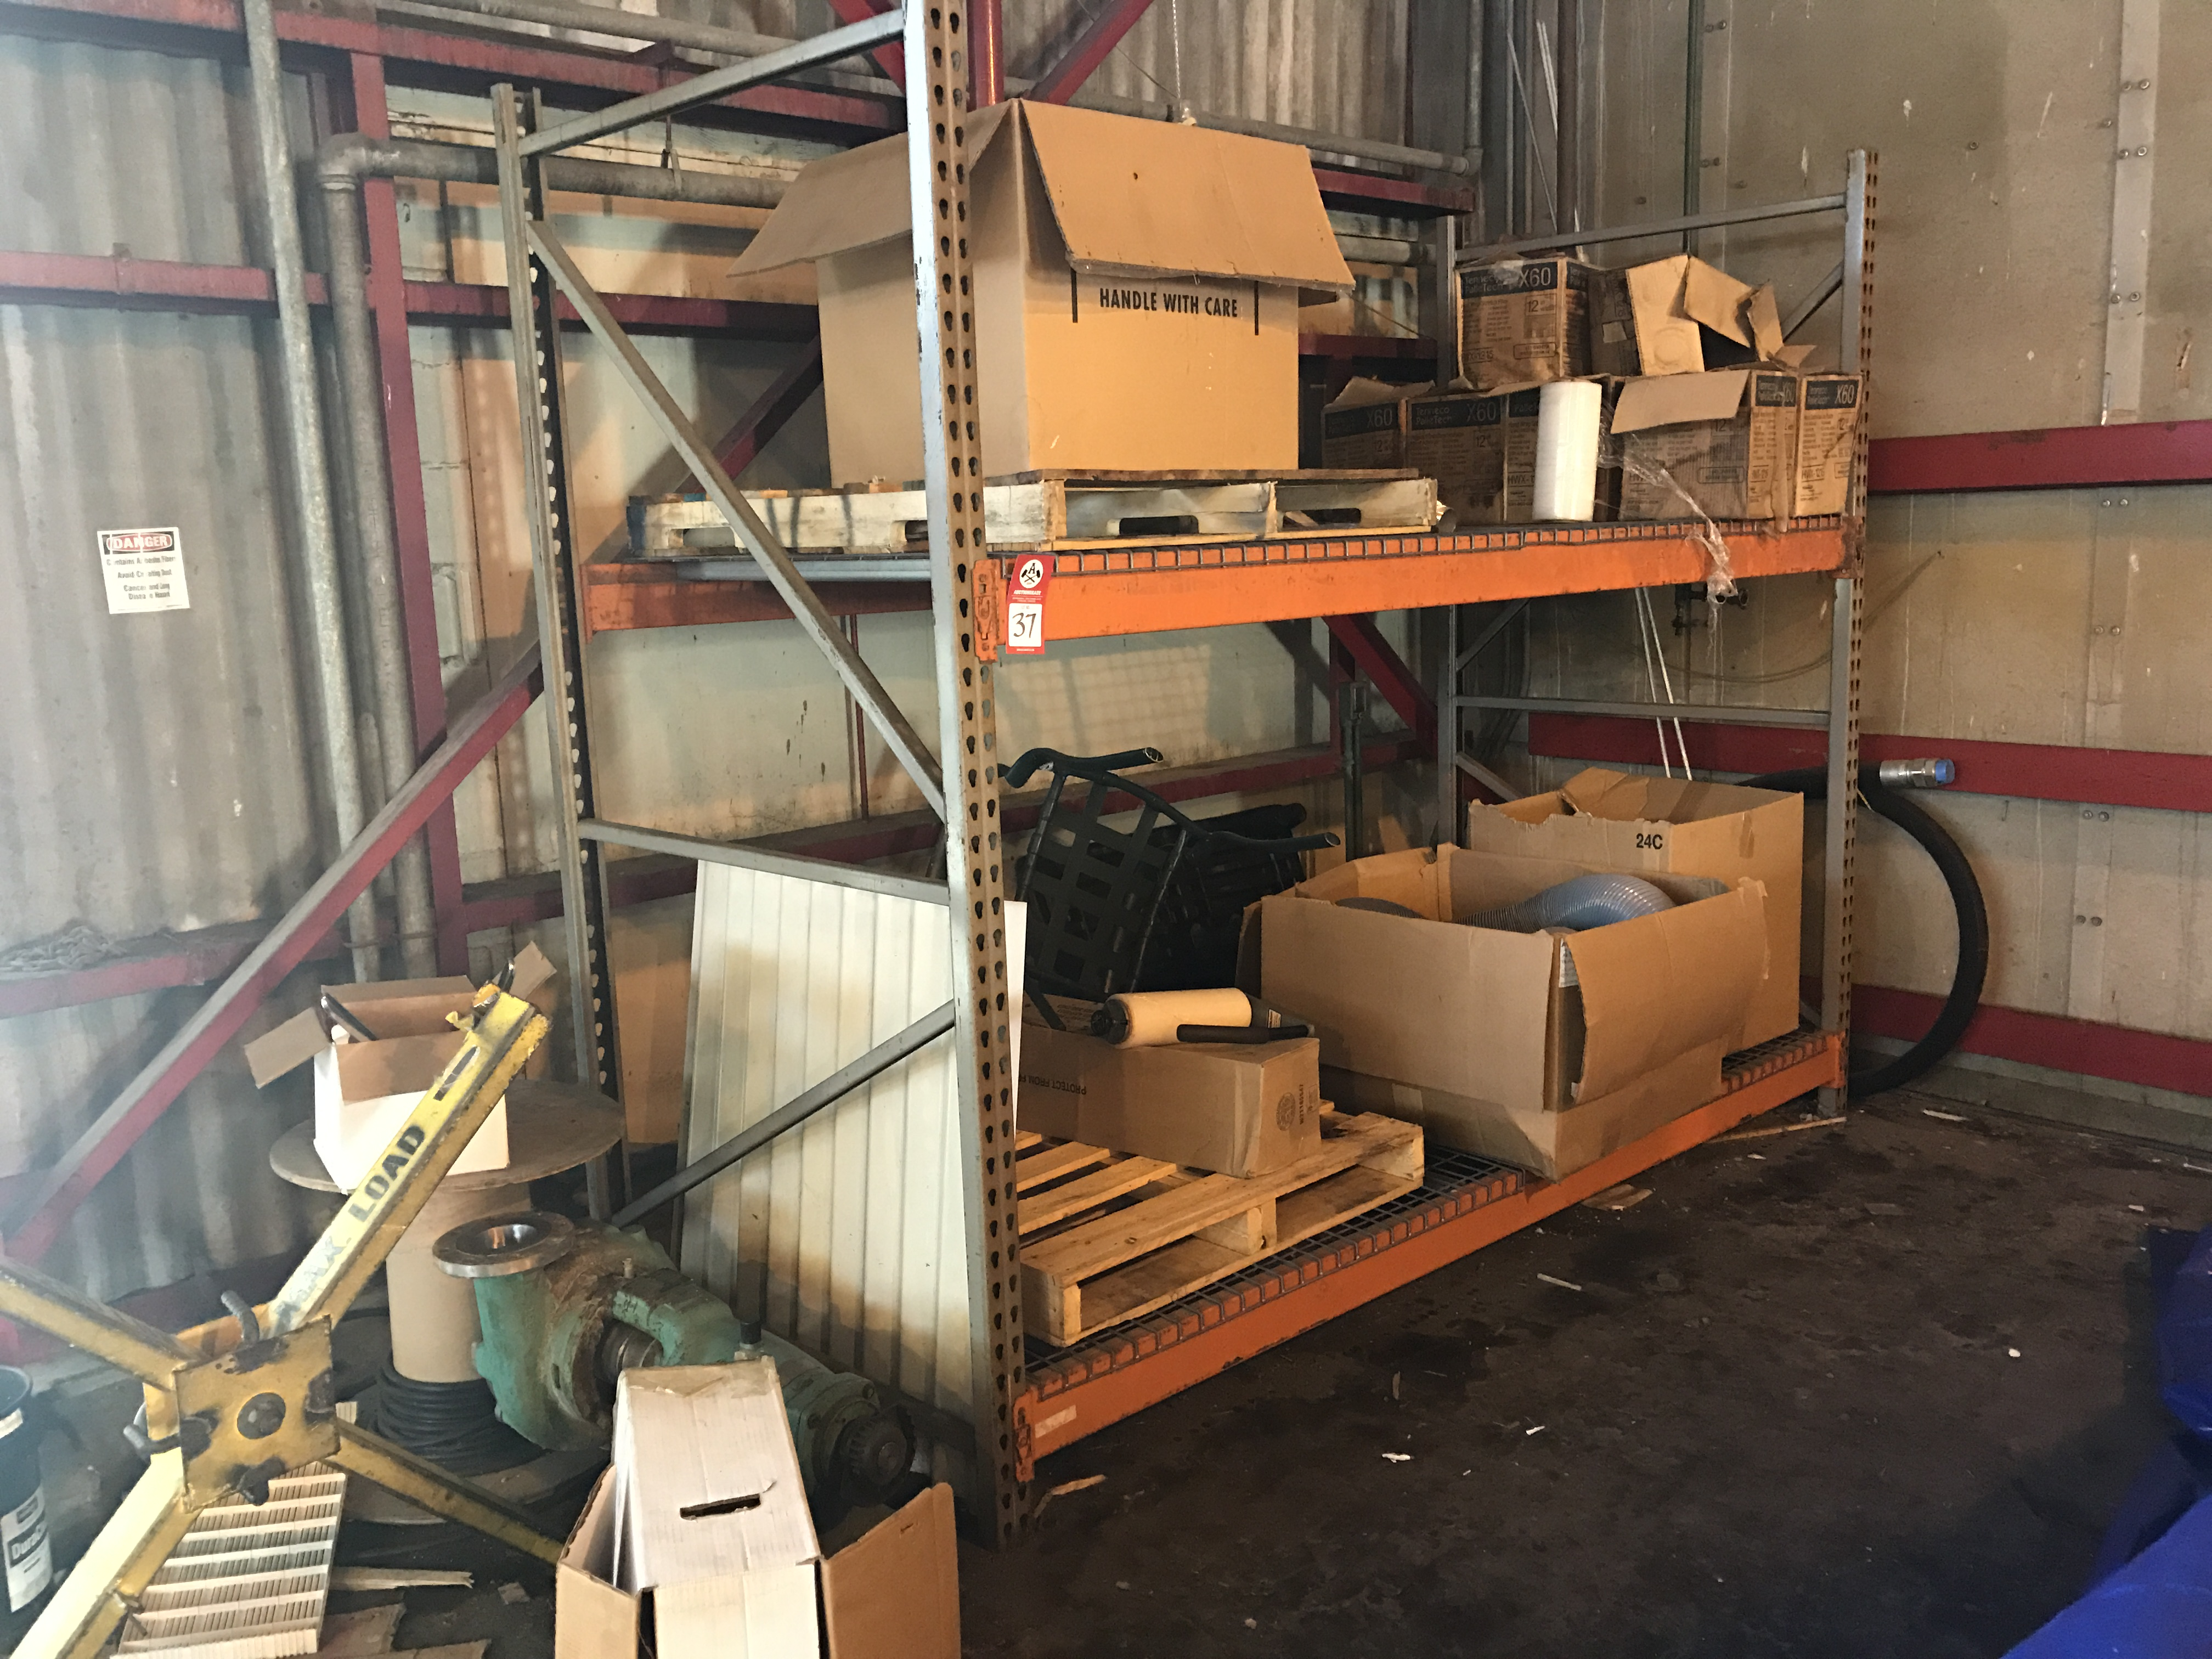 Lot 37 - Contents of pallet rack. Pallet rack not included